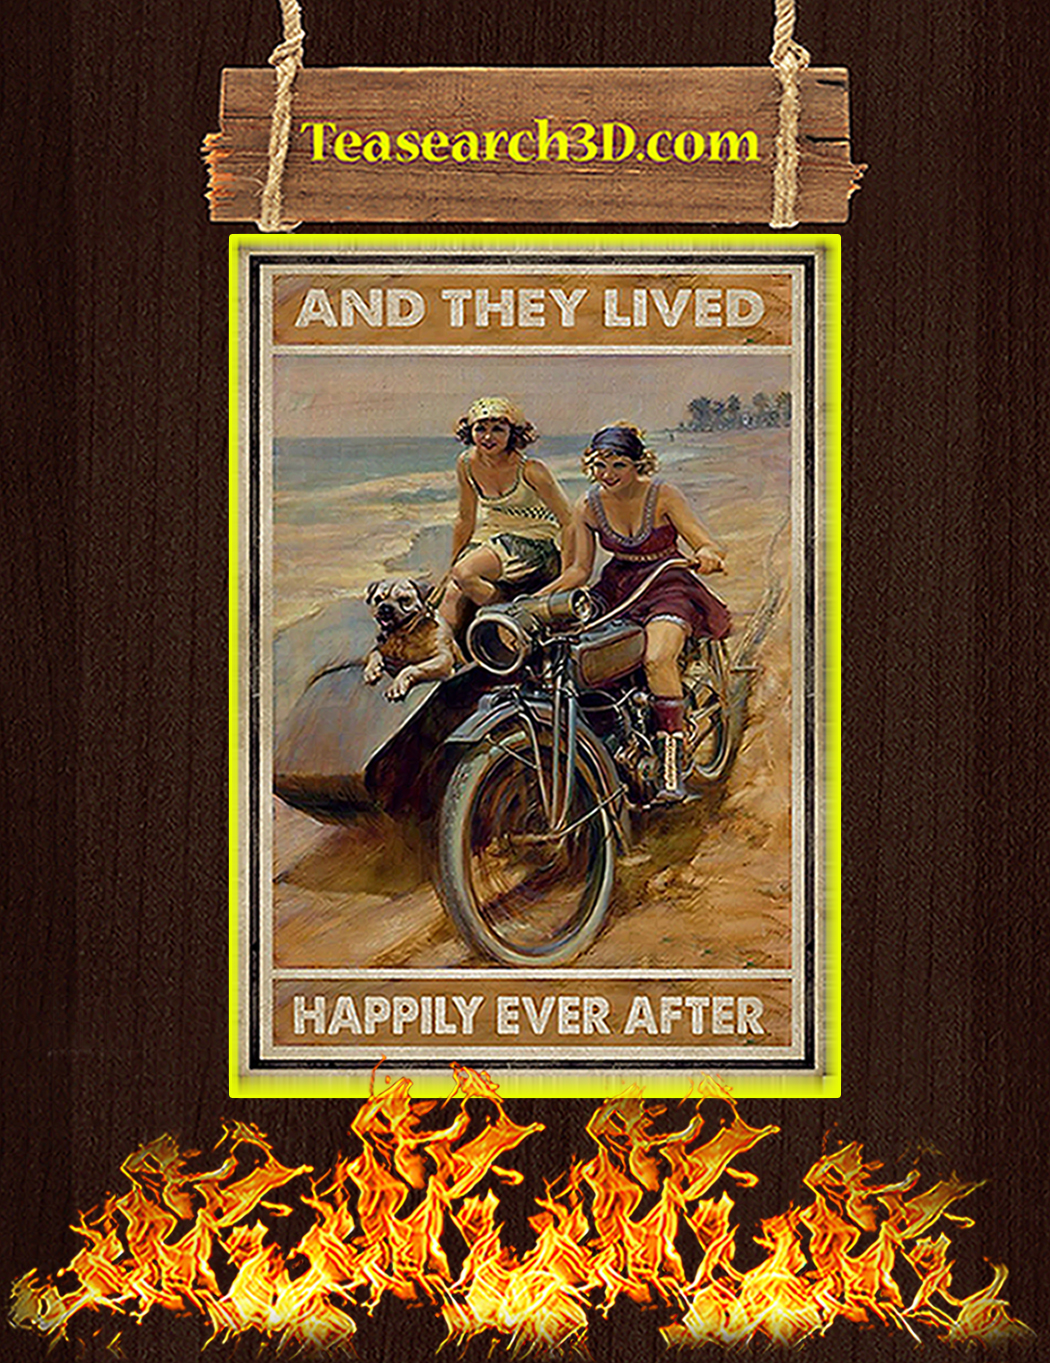 Biker And they lived happily ever after poster A1